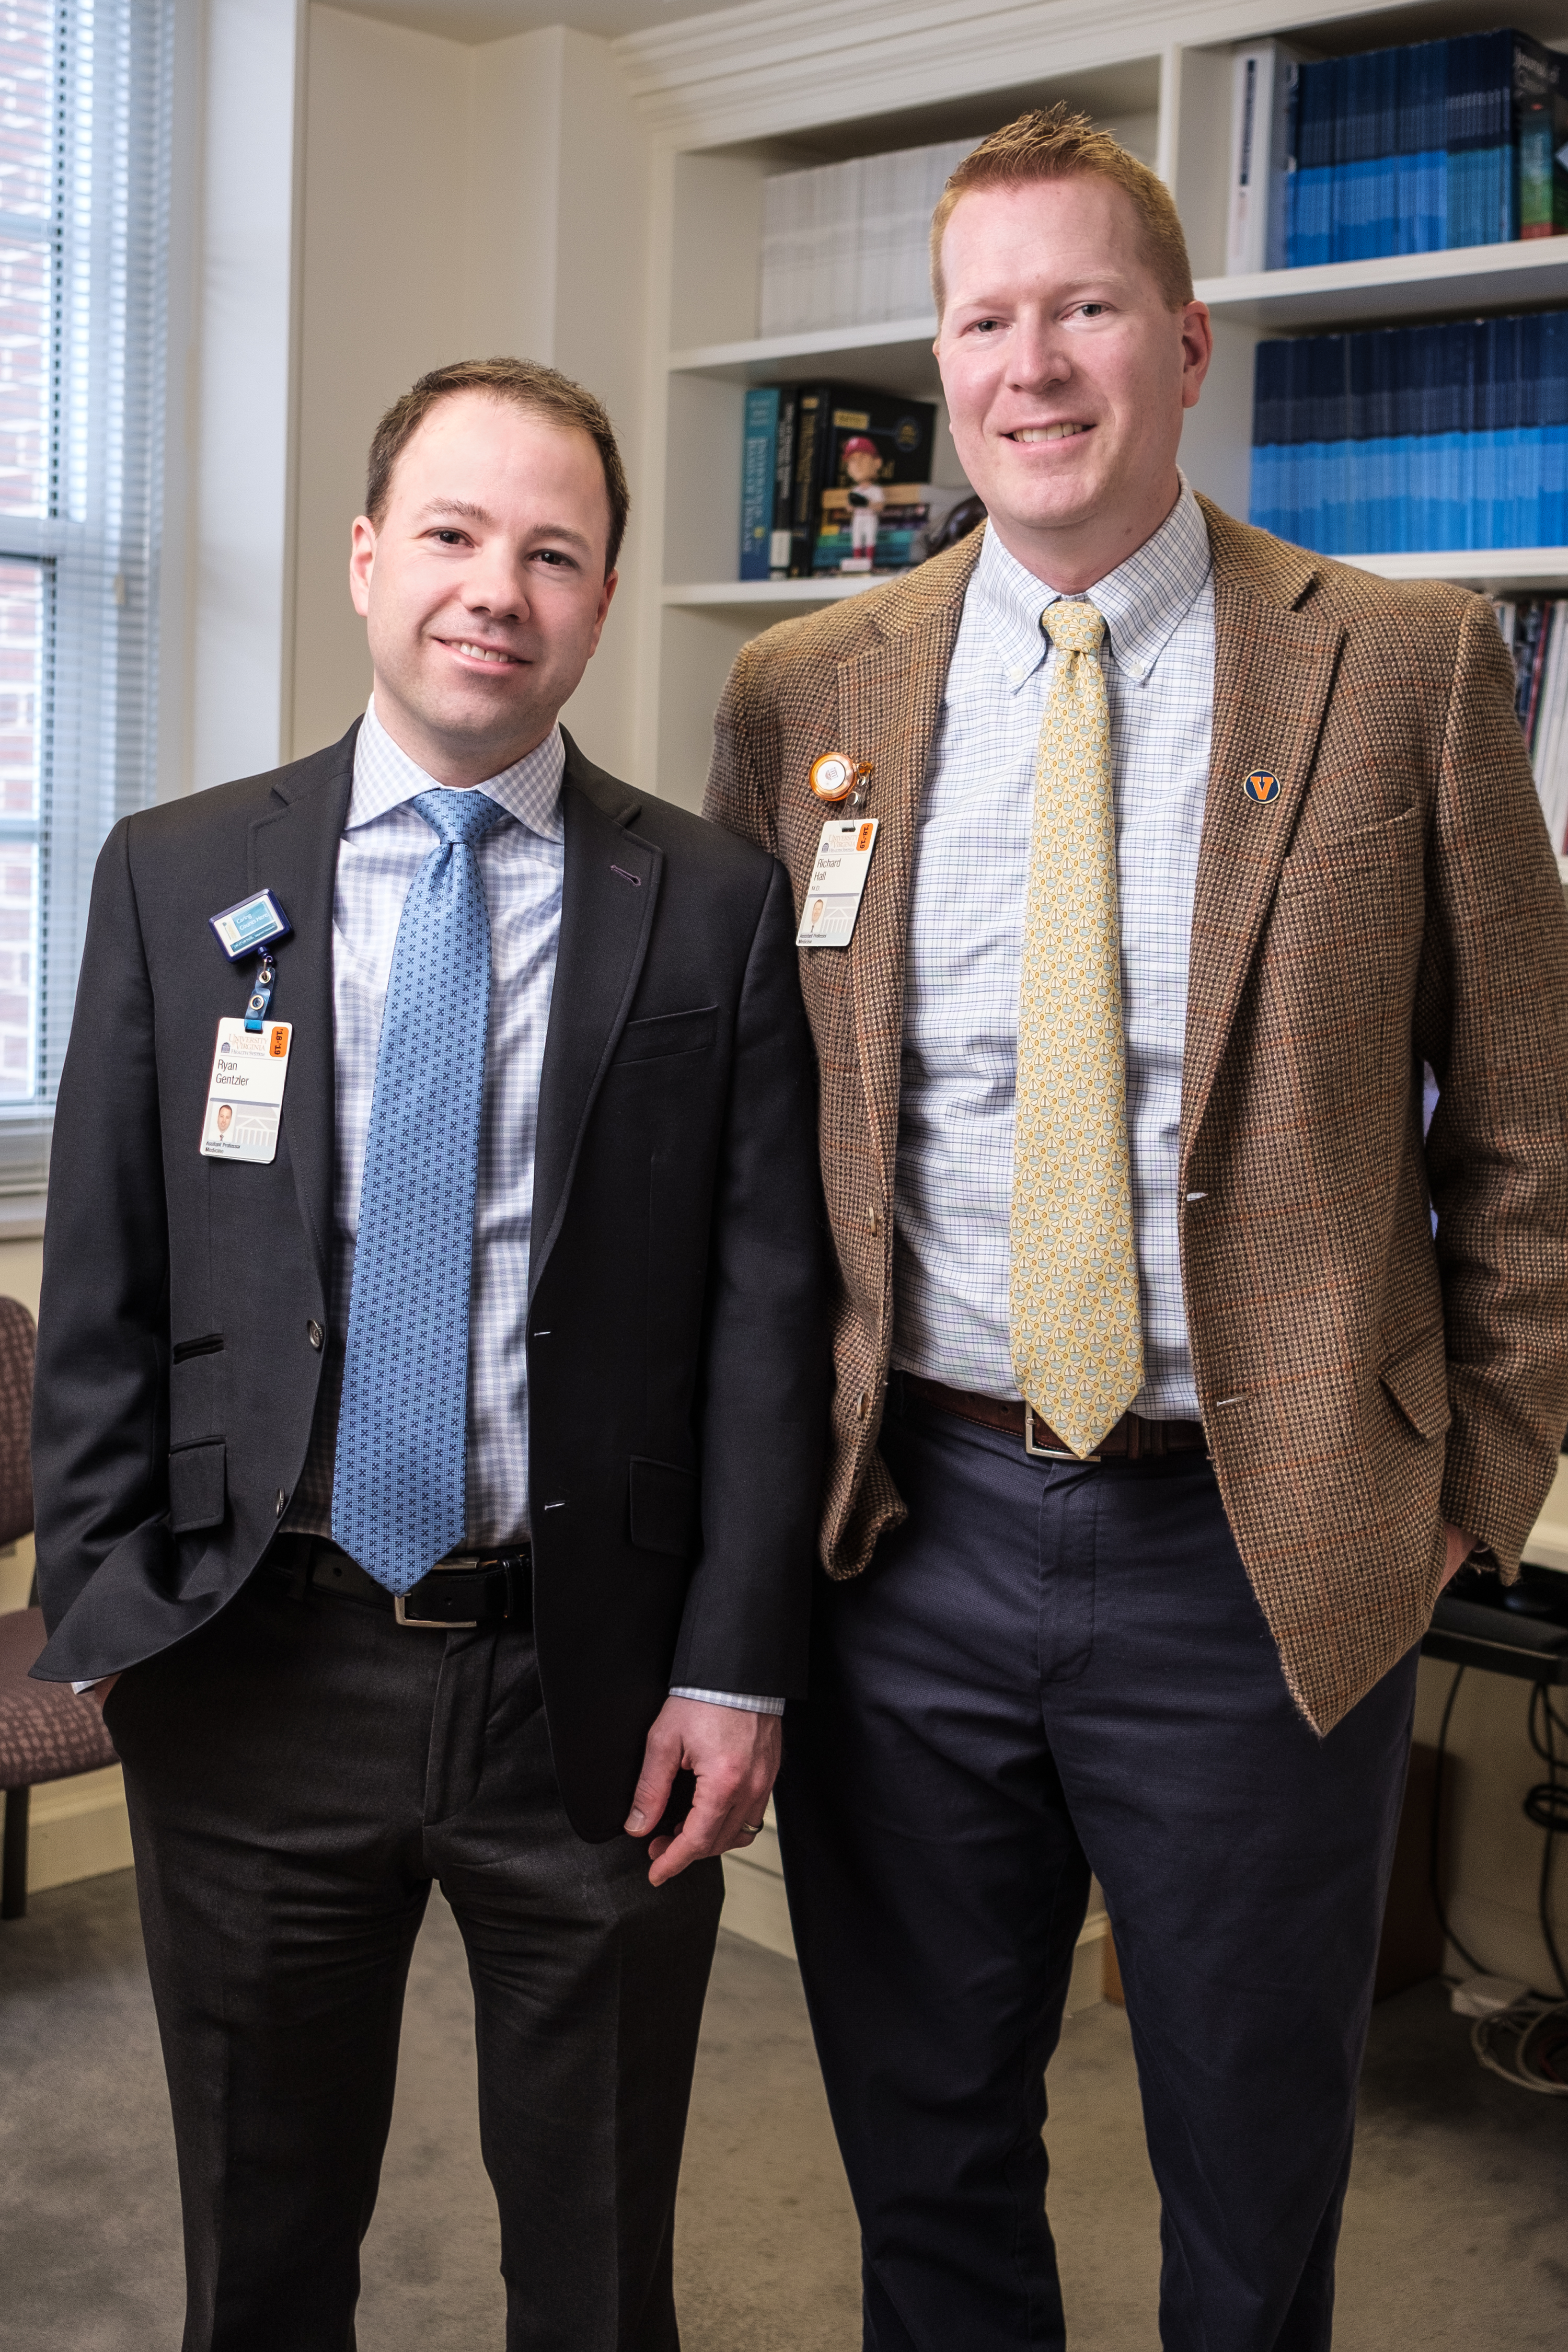 Dr. Ryan Gentzler (left) and Dr. Richard Hall stand next to each other and smile.